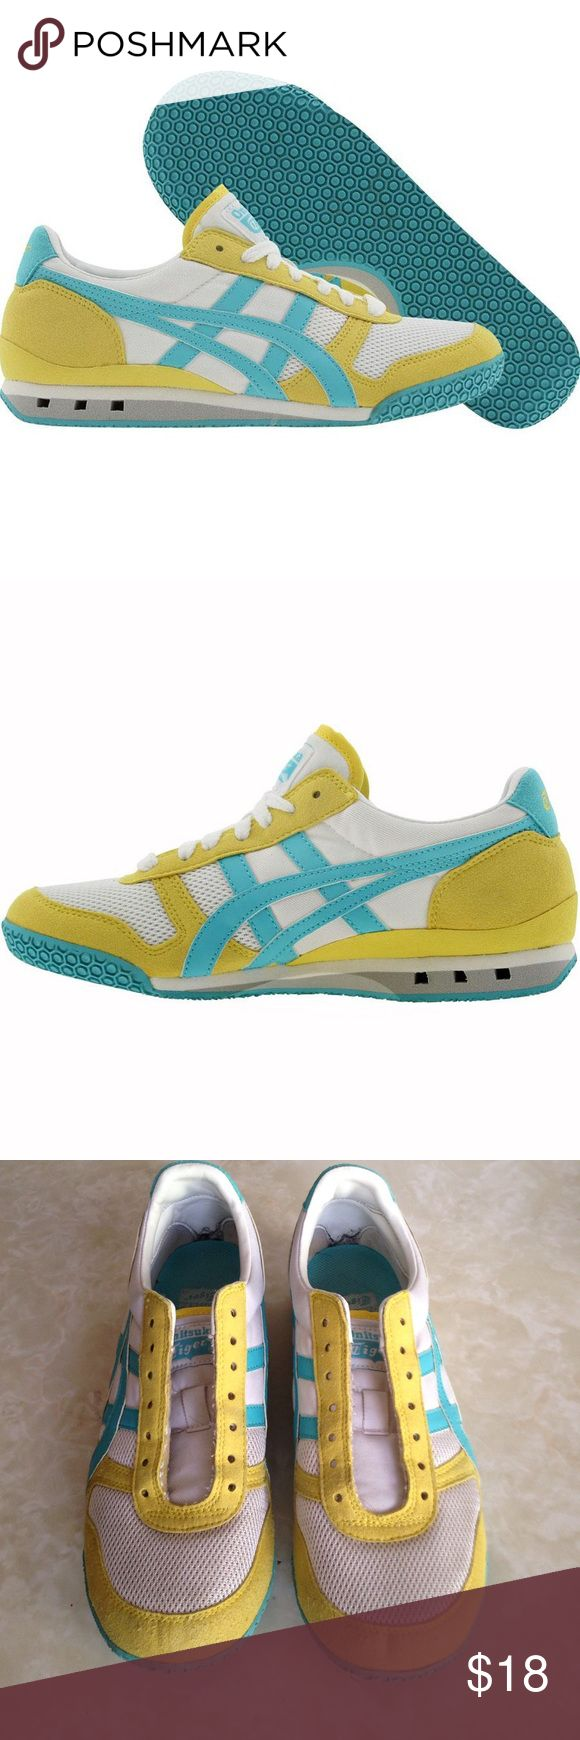 Onitsuka Tigers Ultimate 81 Sneakers White, yellow and Capri blue. Very light wear. Still in fantastic condition. Laces included. Onitsuka Tiger Shoes Sneakers